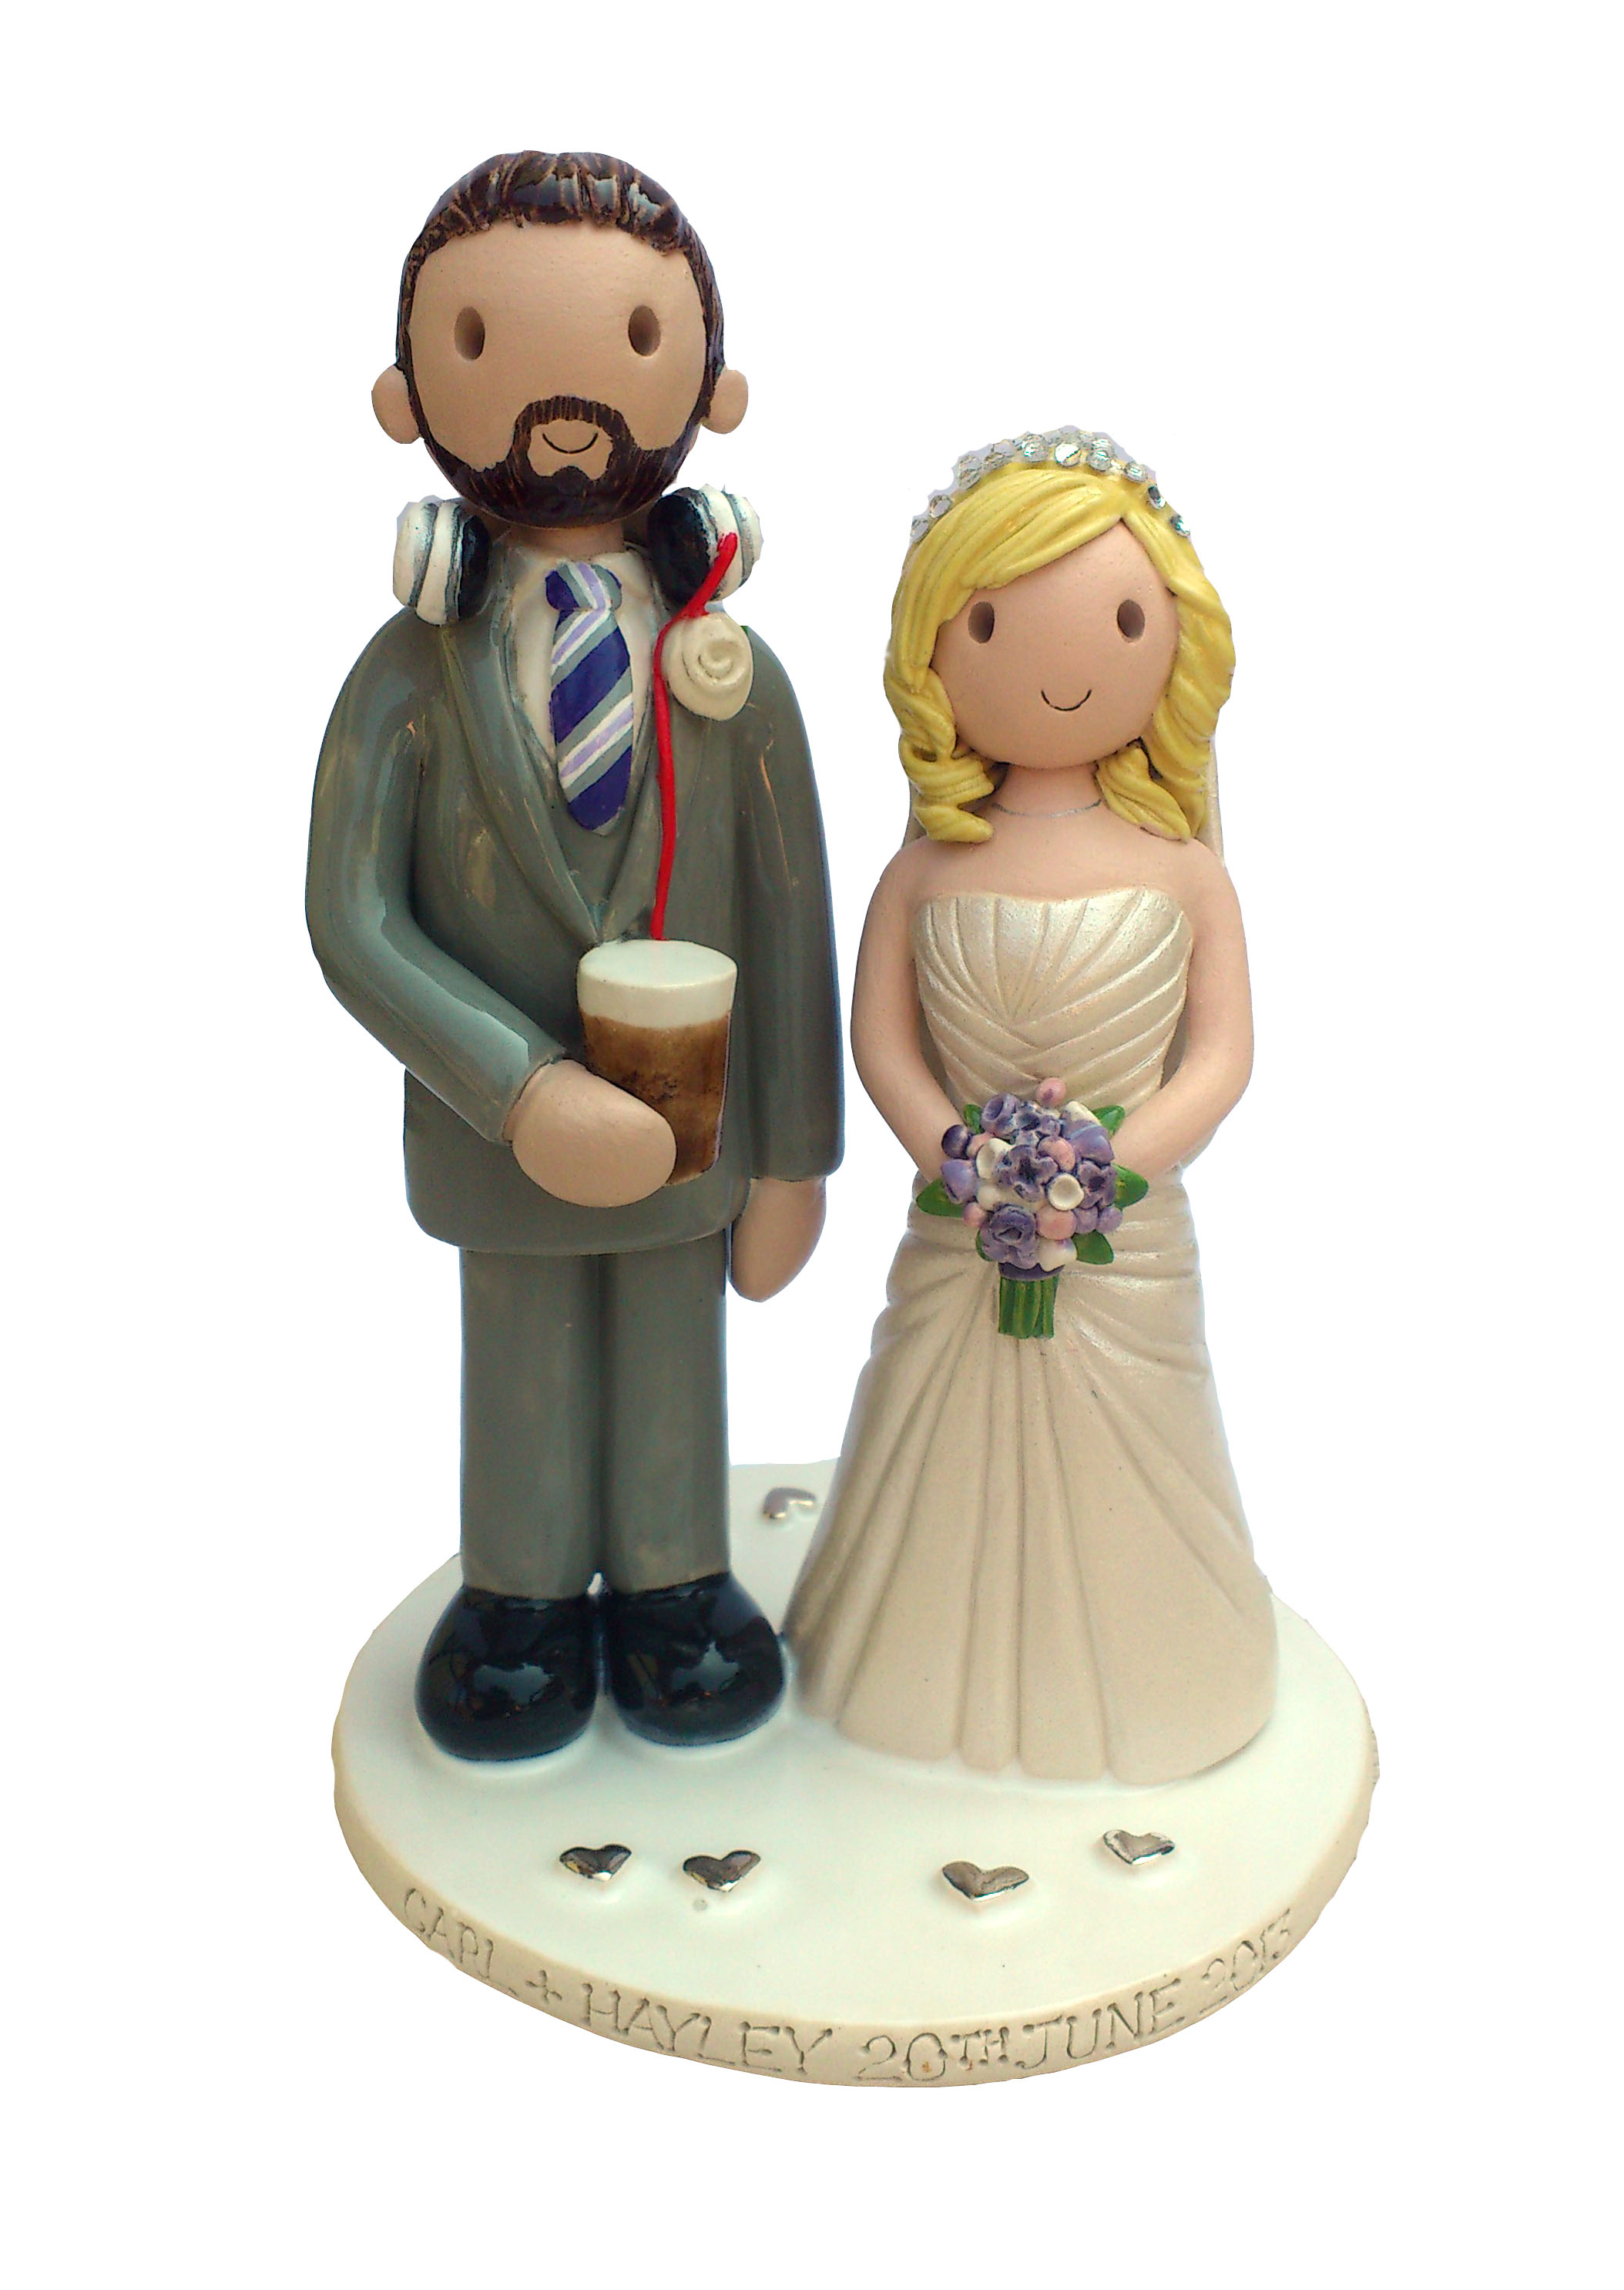 personalised clay wedding cake toppers uk wedding cake toppers gallery examples of toppers we 18210